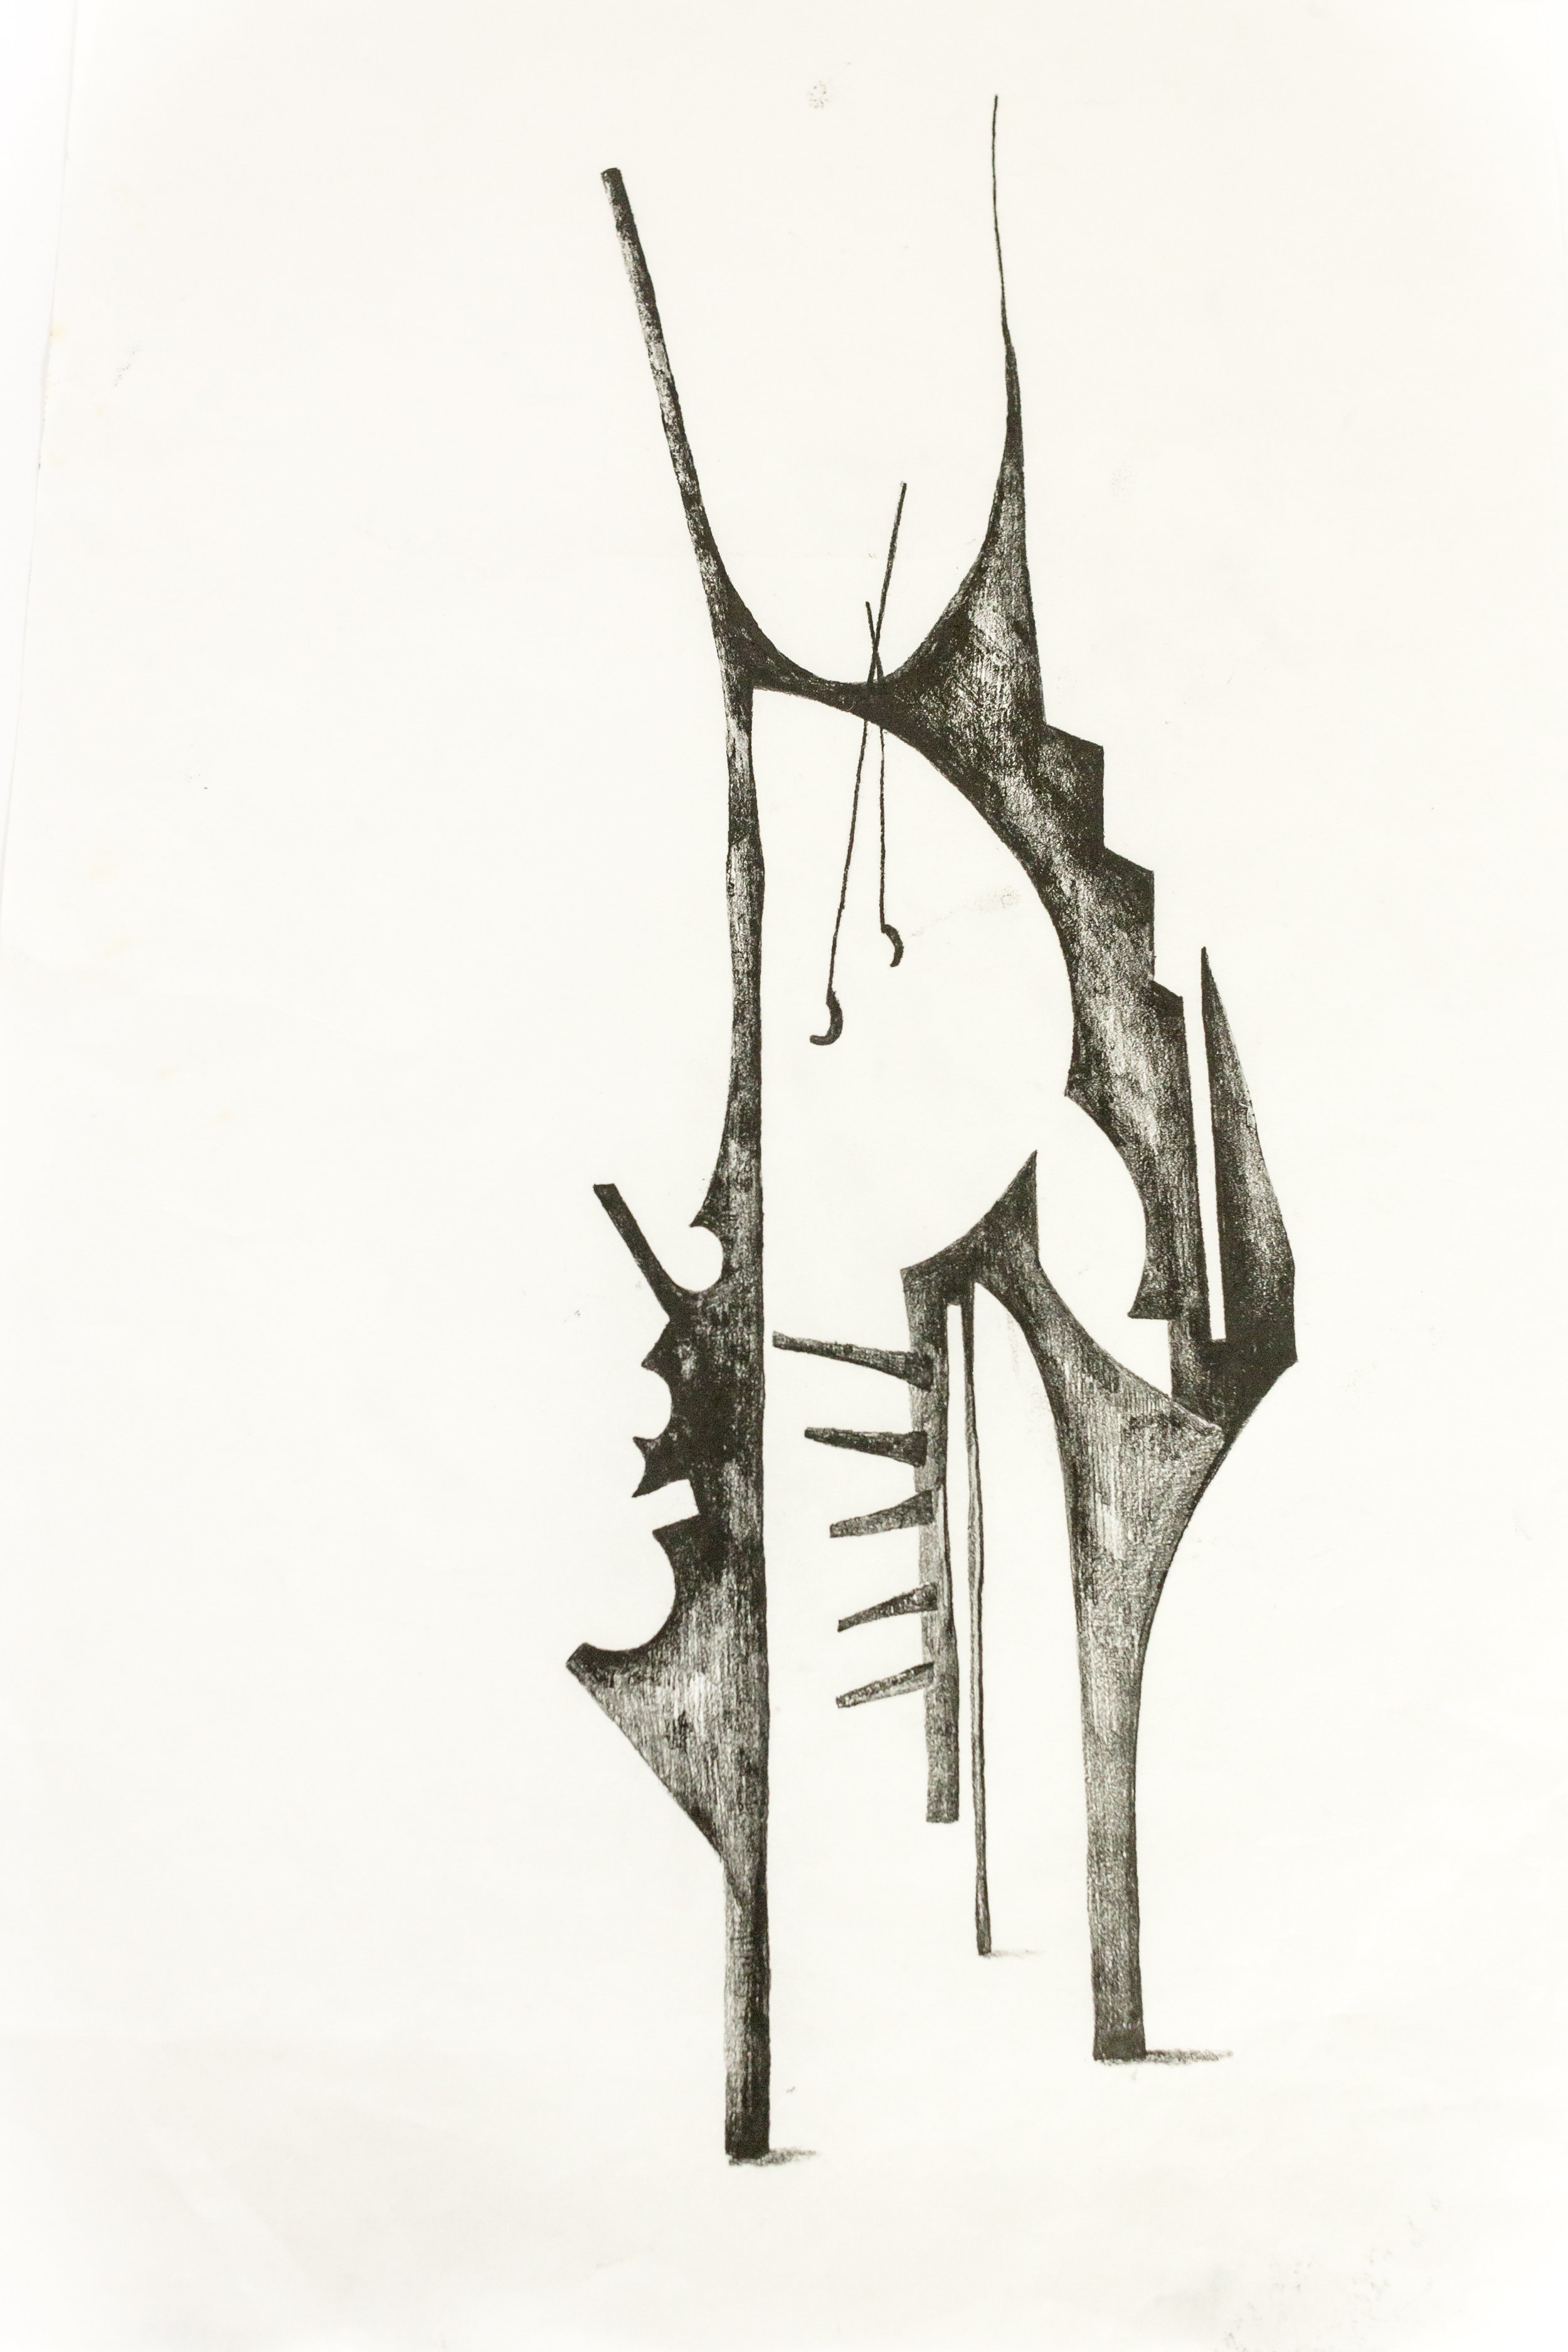 'Untitled Sculpture Drawing iii'